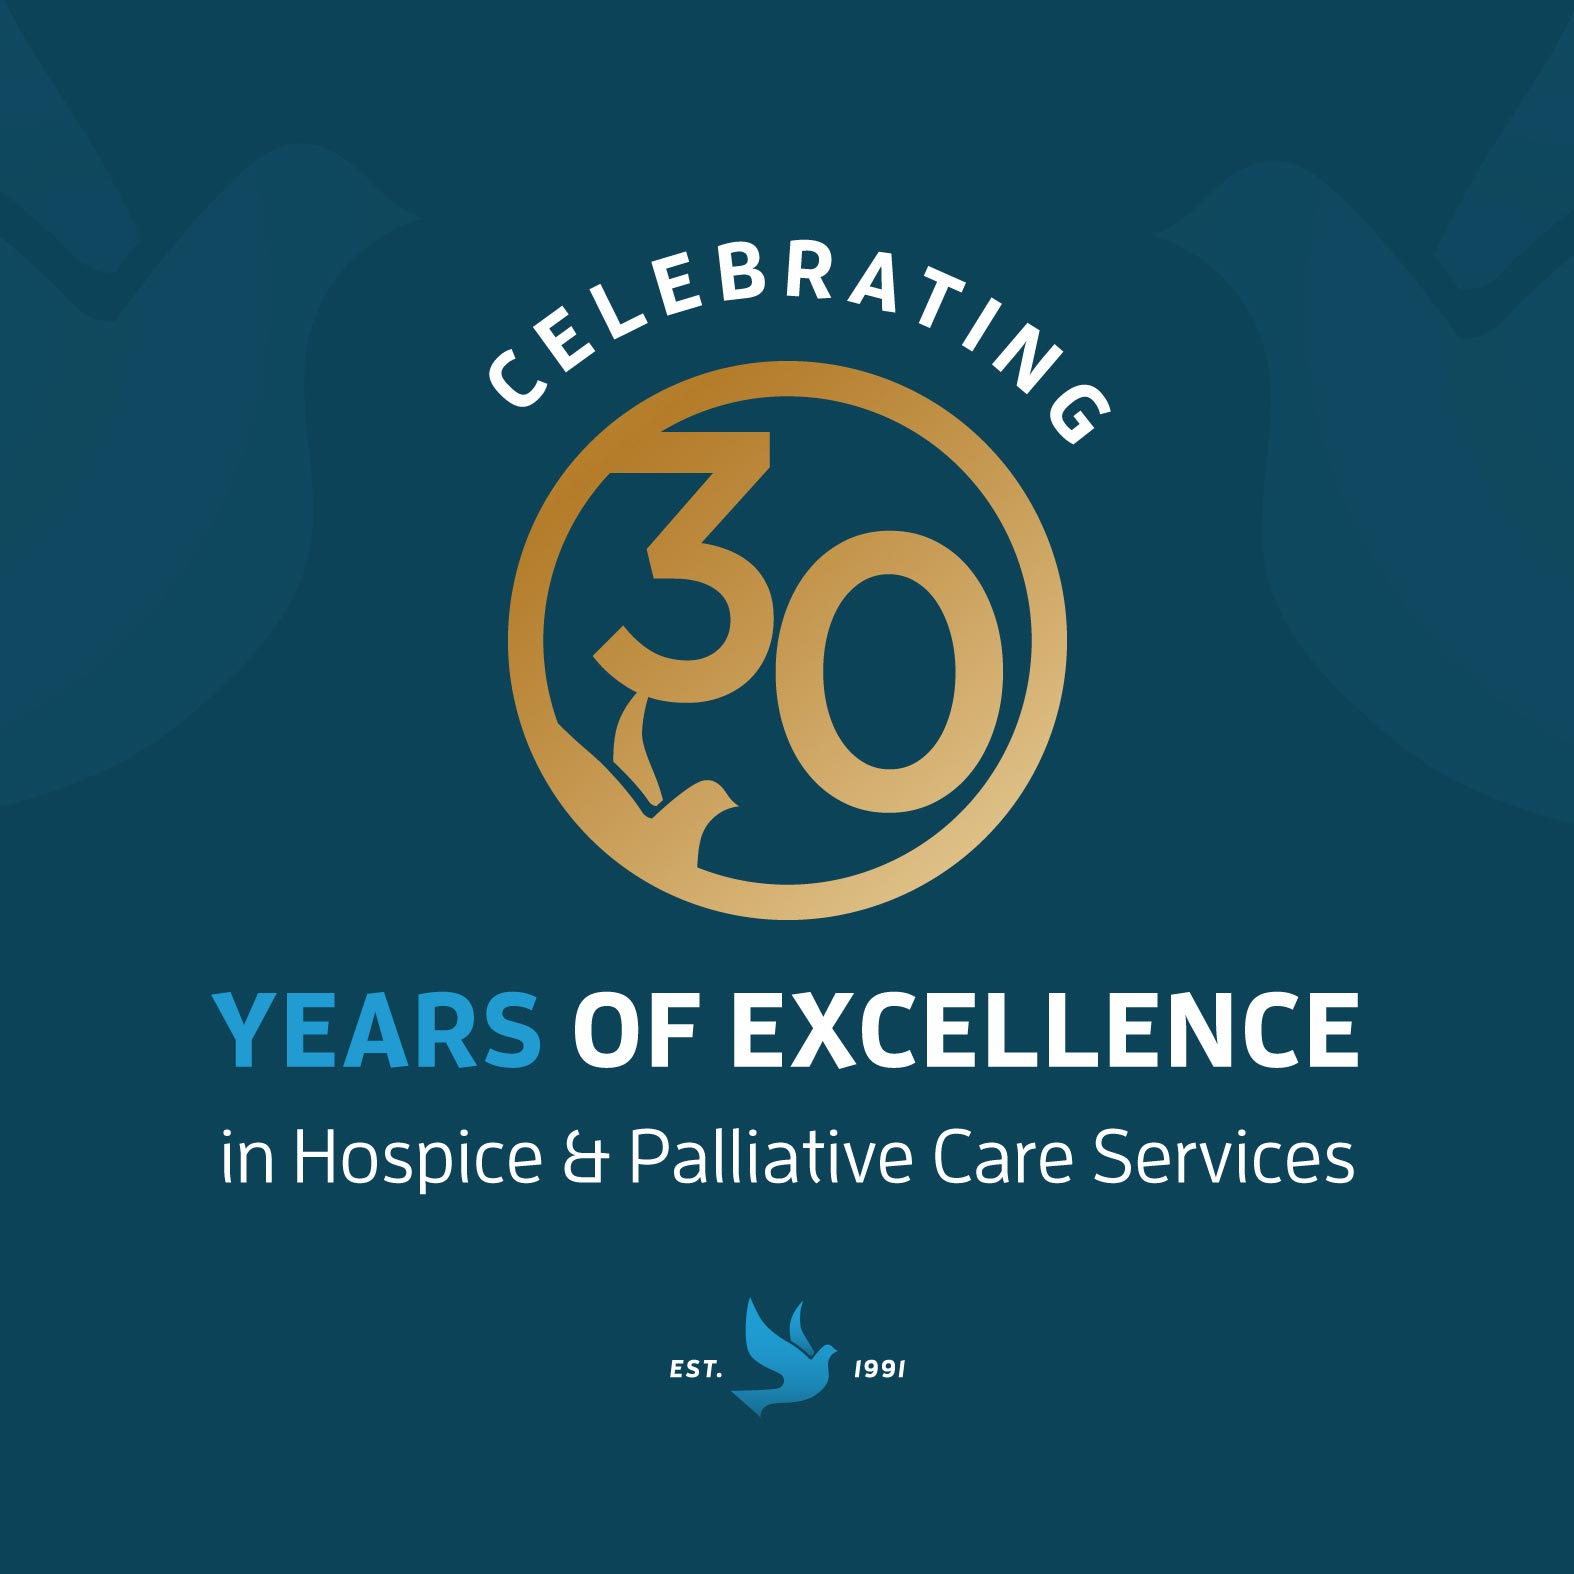 Celebrating 30 Years of Excellence in Hospice & Palliative Care Services